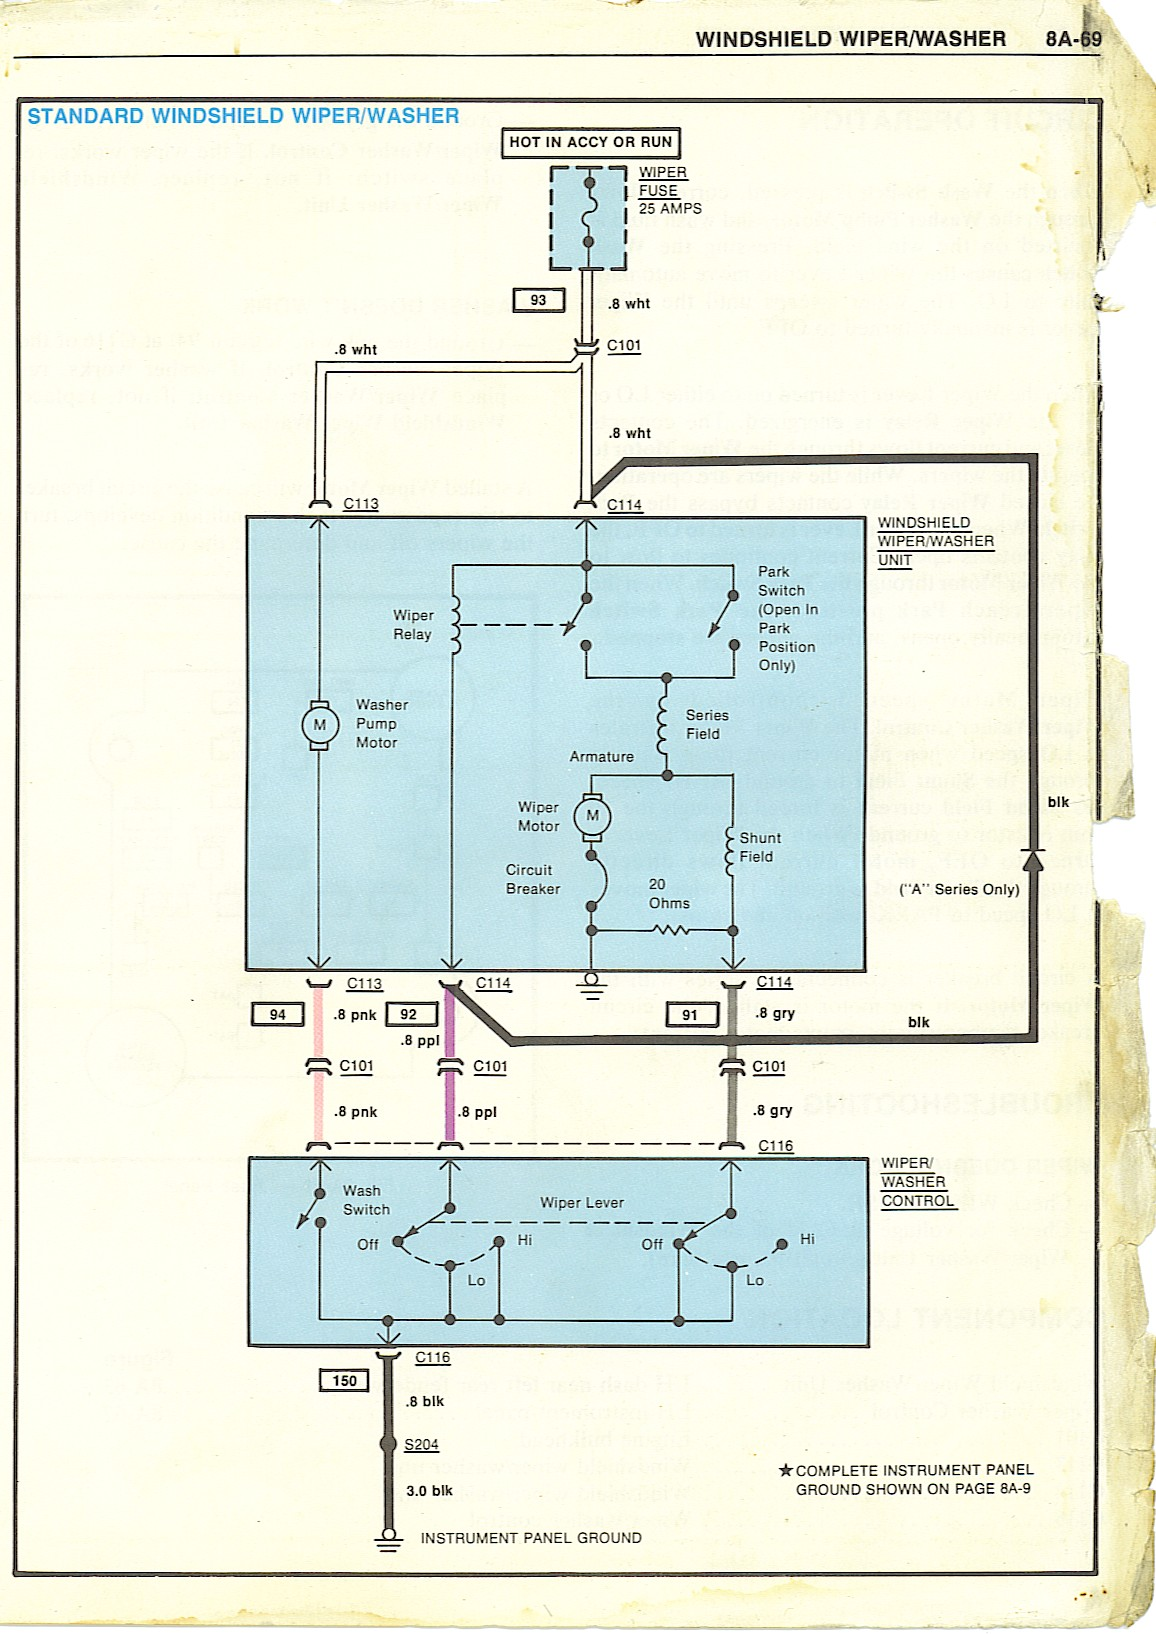 Strange Chevy Monte Carlo Vacuum Diagrams On 1967 Pontiac Vacuum Diagram Wiring Cloud Funidienstapotheekhoekschewaardnl